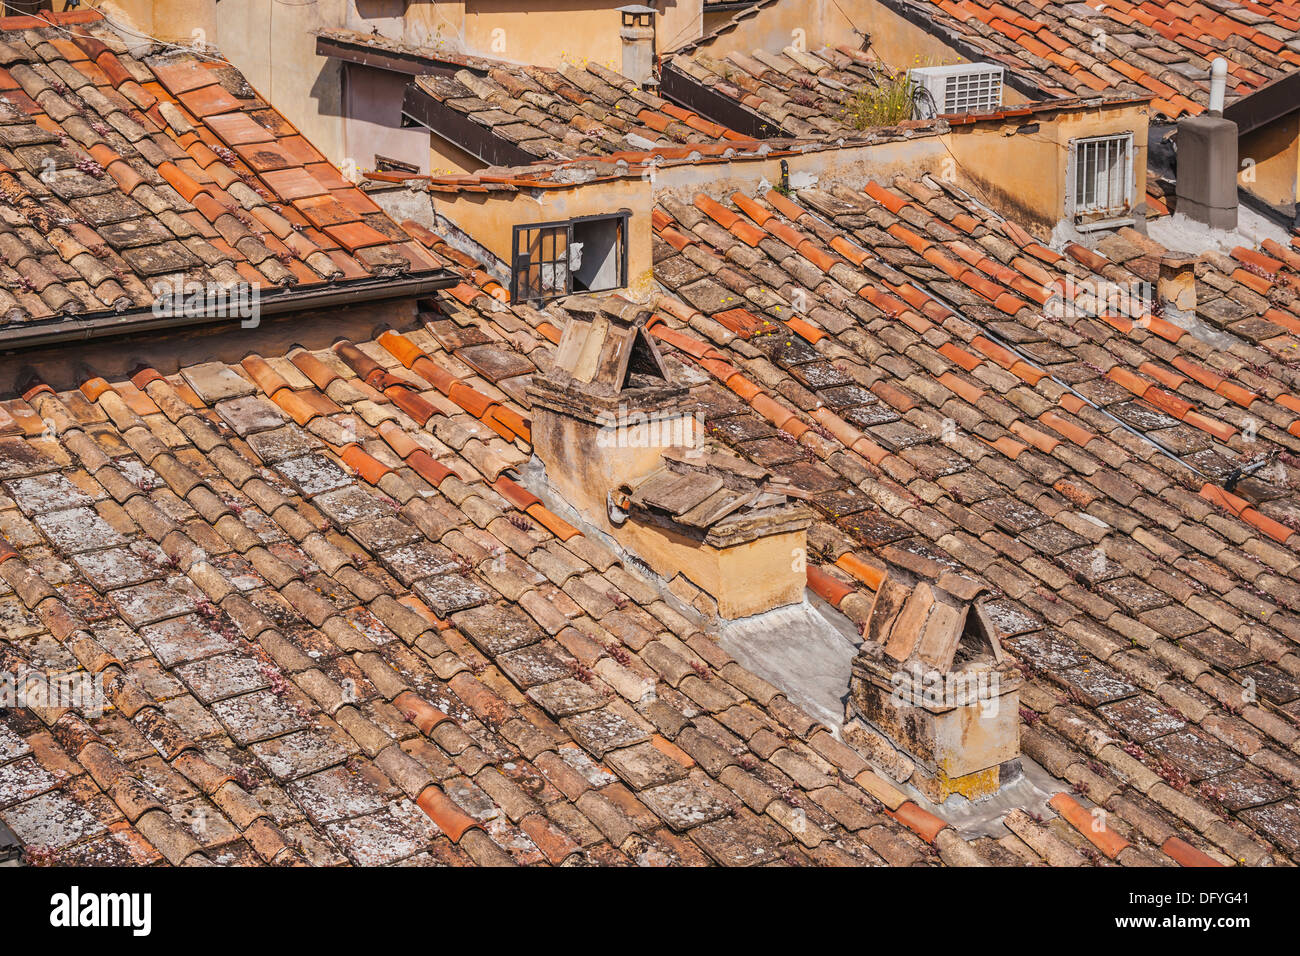 Tiled roofs in the in the old town of Rome, Lazio, Italy, Europe - Stock Image